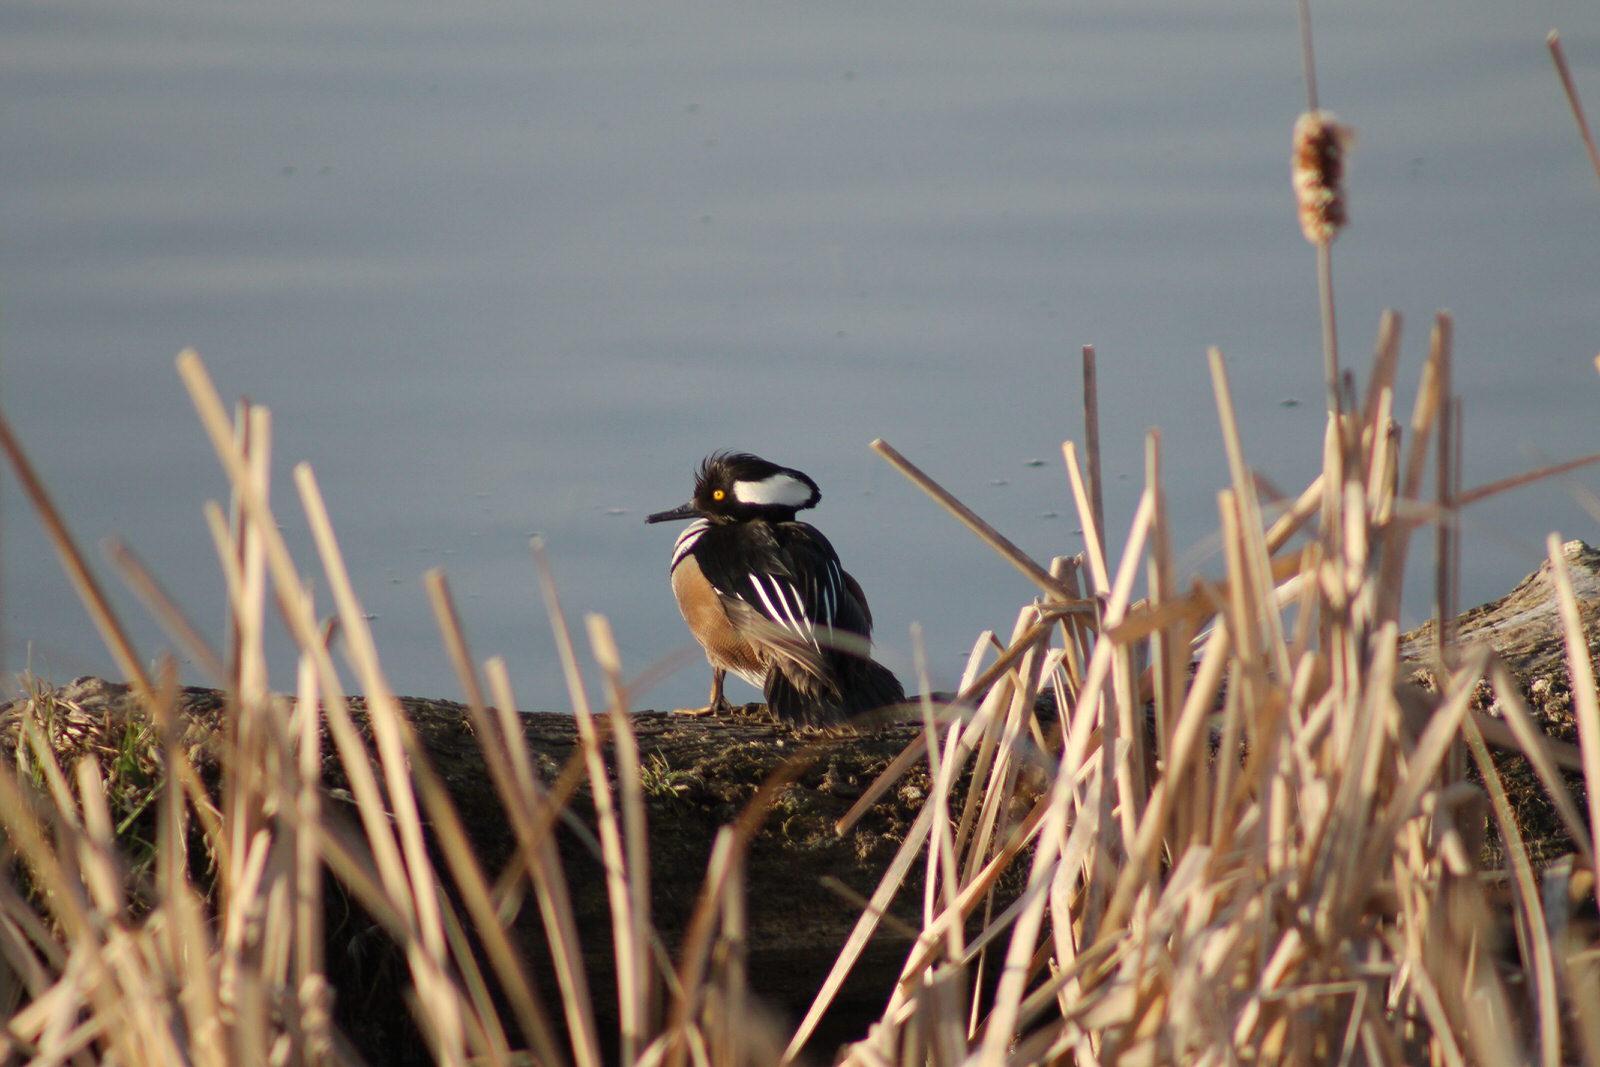 photo: Hooded Merganser. Photo by Kimi Smith.